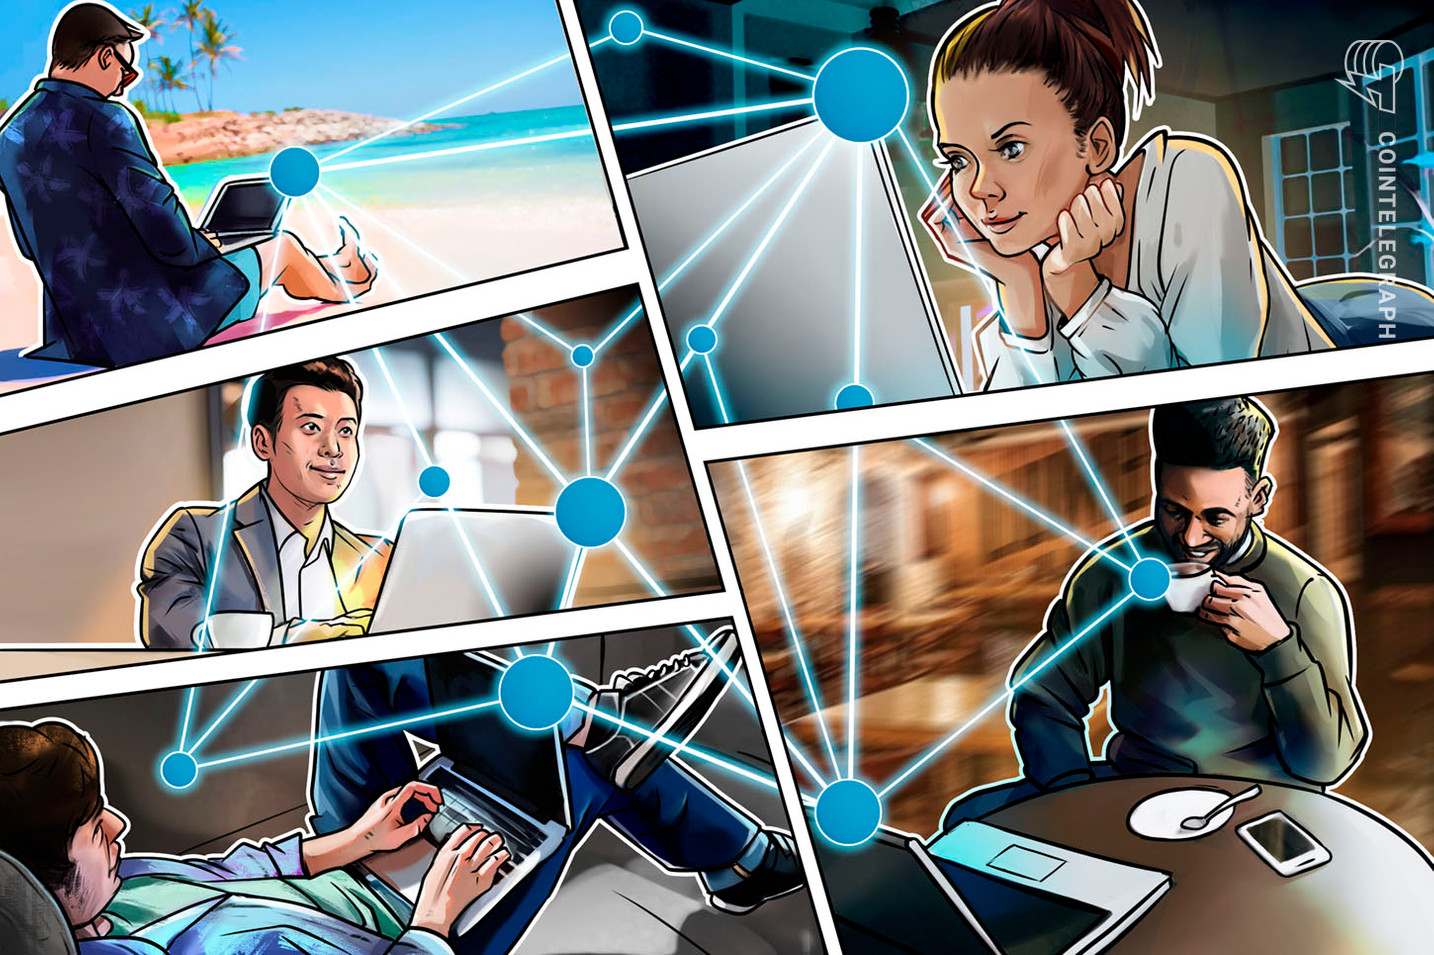 Zoom Data Scandal Shows Blockchain May Be the Future of Communications